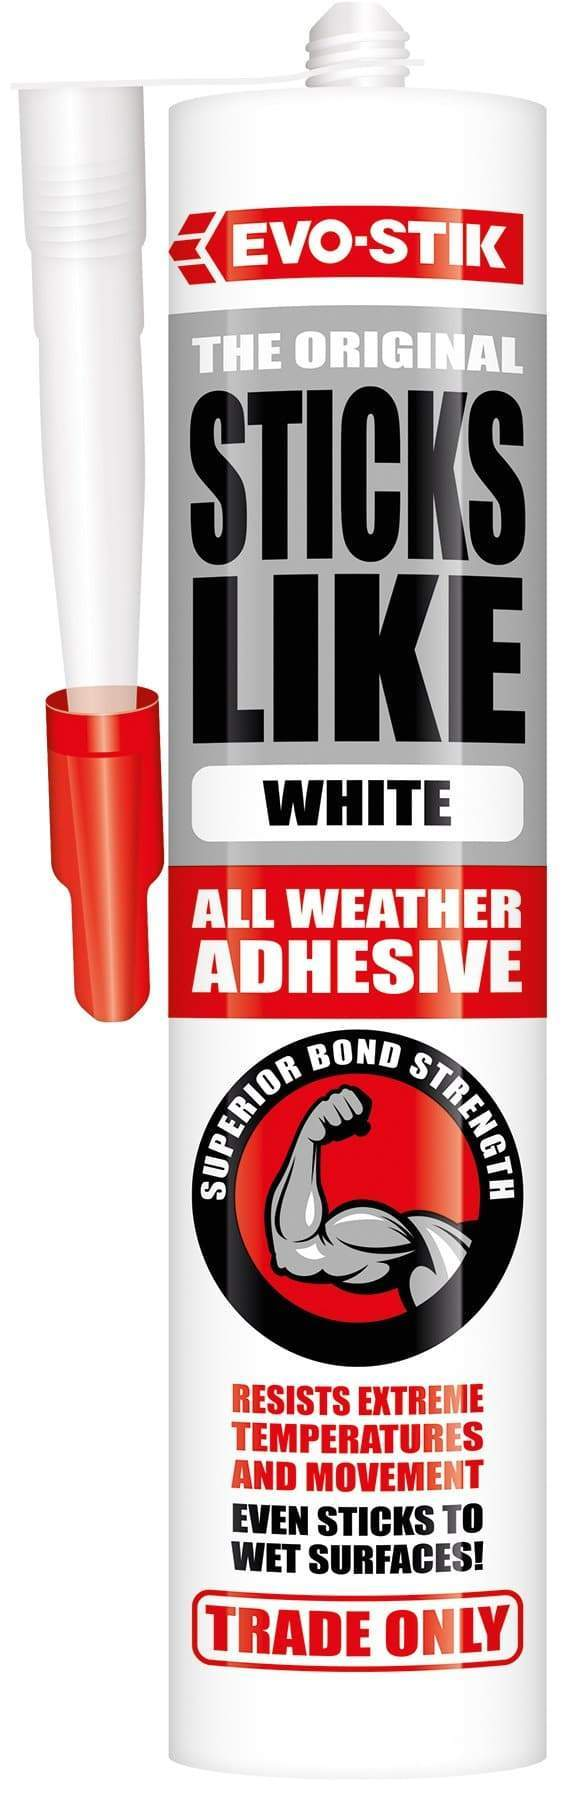 Evo-Stik Sticks Like Sh*t Adhesive - 350ml - Grab Adhesive Hybrid - Trade Building Products